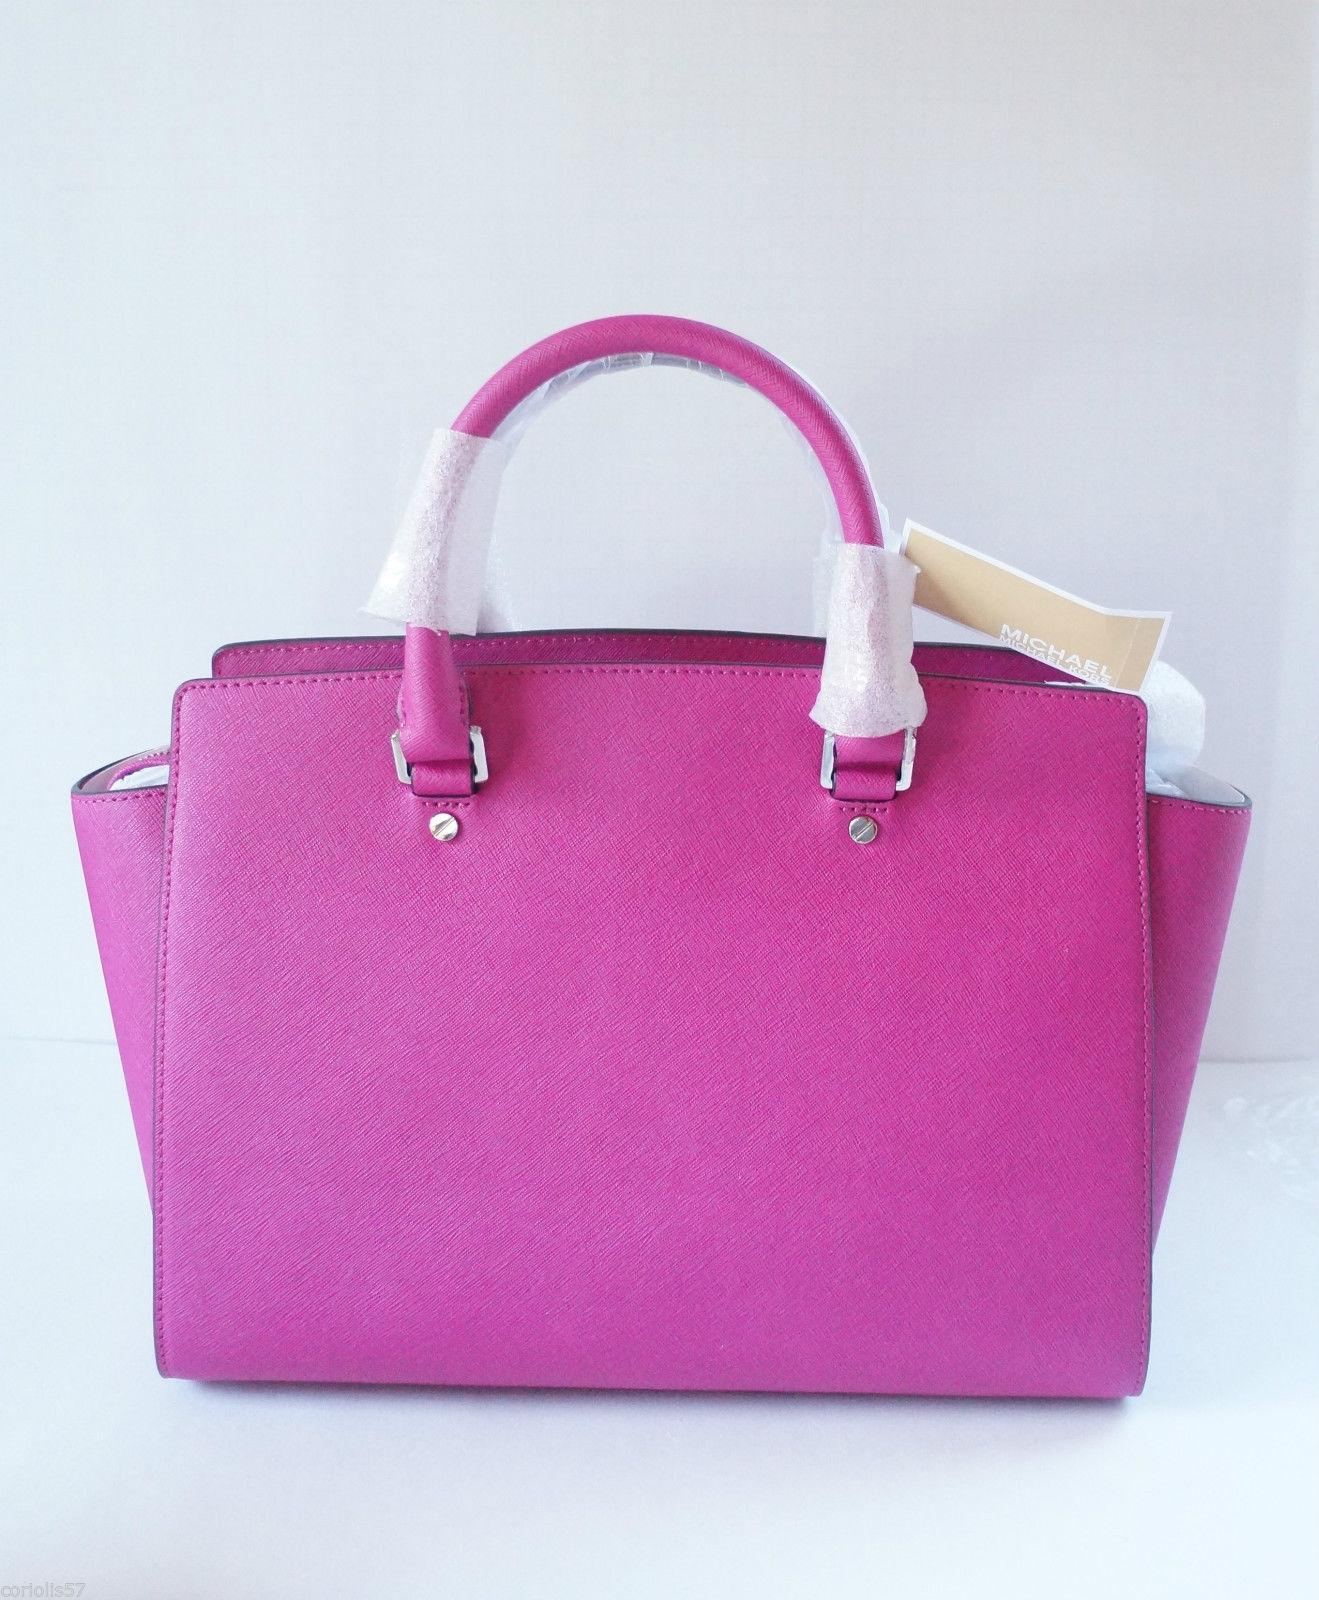 9885794327f1 ireland michael kors selma large top fuchsia saffiano leather satchel 4eaeb  9f223